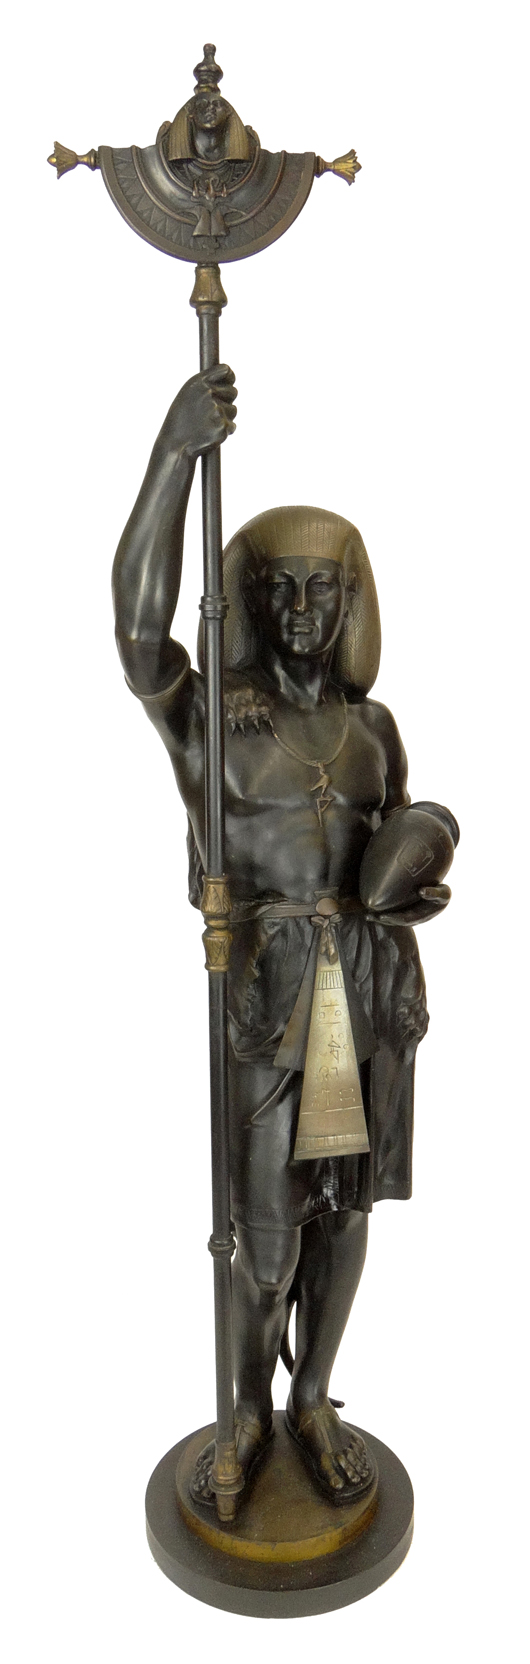 Emile Louis Picault bronze, 'Egyptian figure.' Price realized: $10,600. Photo by Royce Bonta, Kodner Galleries.